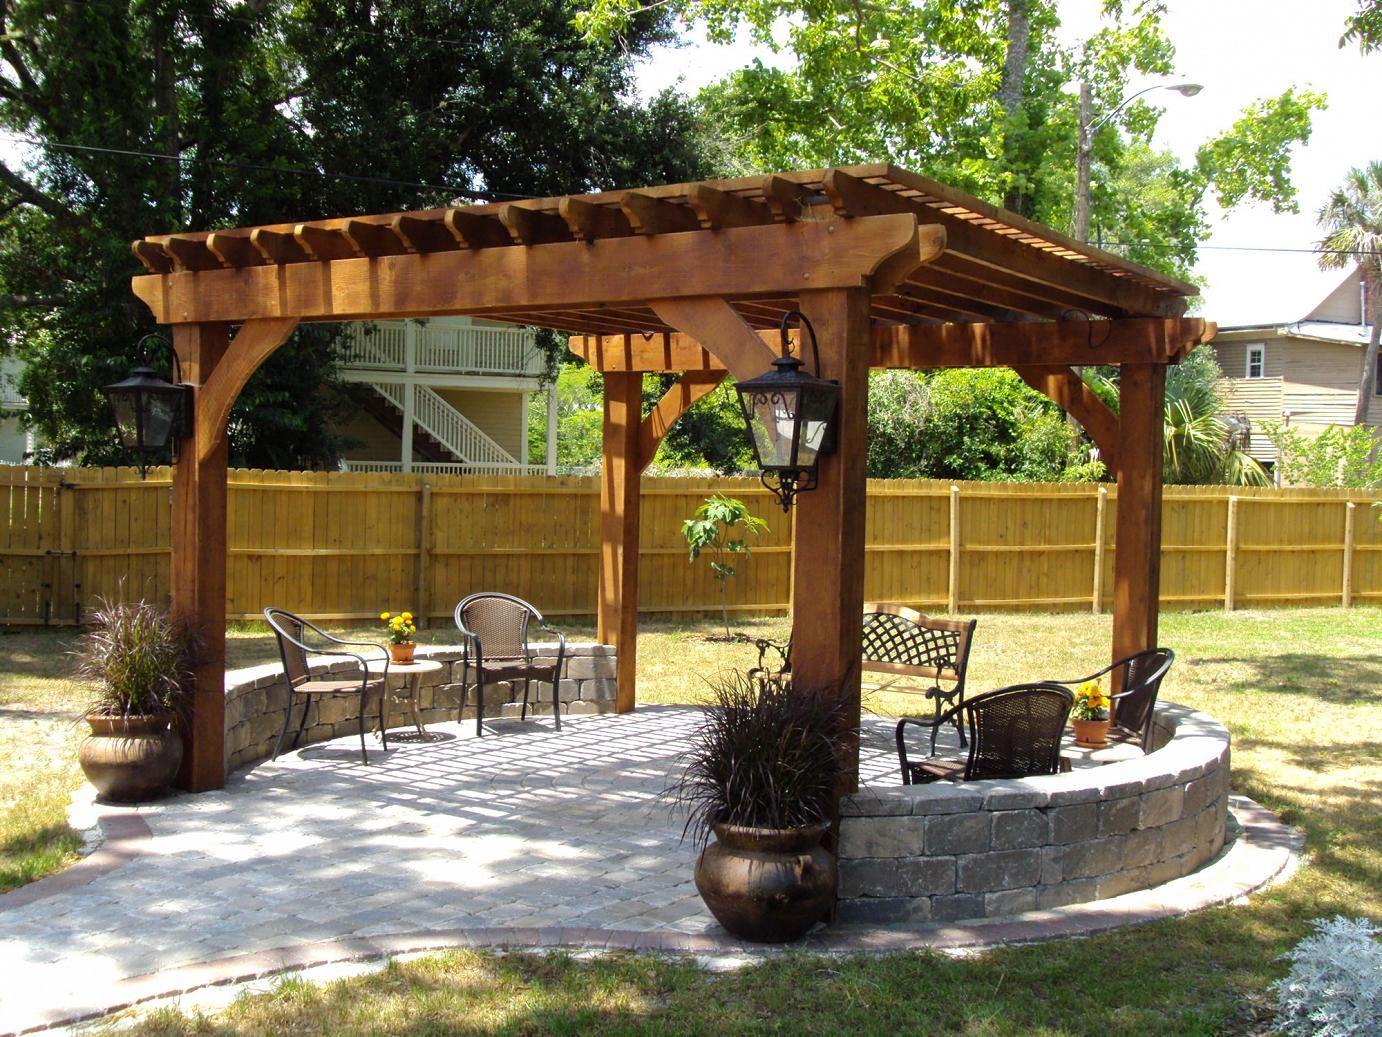 Outdoor Pergolas-Arlington TX Landscape Designs & Outdoor Living Areas-We offer Landscape Design, Outdoor Patios & Pergolas, Outdoor Living Spaces, Stonescapes, Residential & Commercial Landscaping, Irrigation Installation & Repairs, Drainage Systems, Landscape Lighting, Outdoor Living Spaces, Tree Service, Lawn Service, and more.